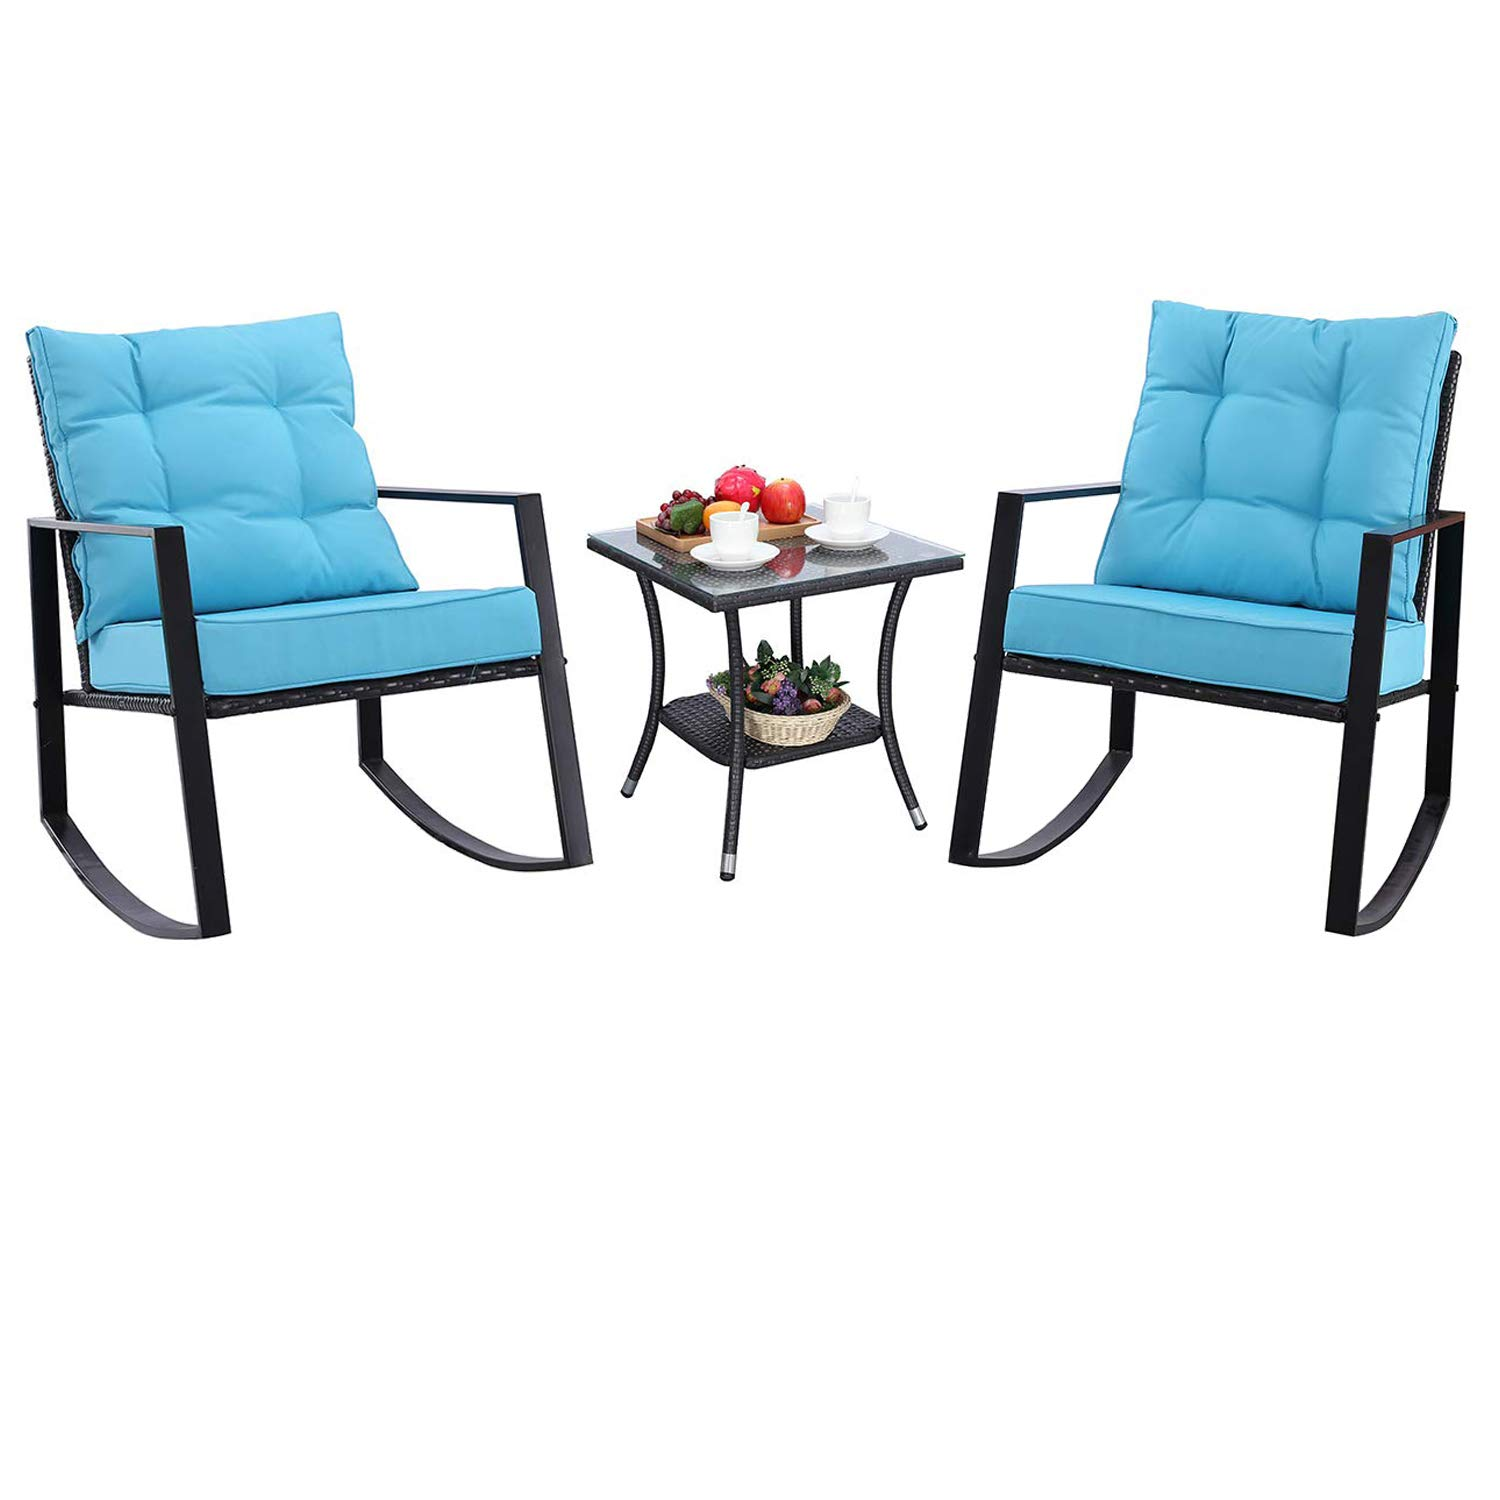 Do4U Outdoor Rocking Chair Set 3-Piece Patio Bistro Set Outdoor Furniture Porch Chairs Conversation Sets with Coffee Table Turquoise